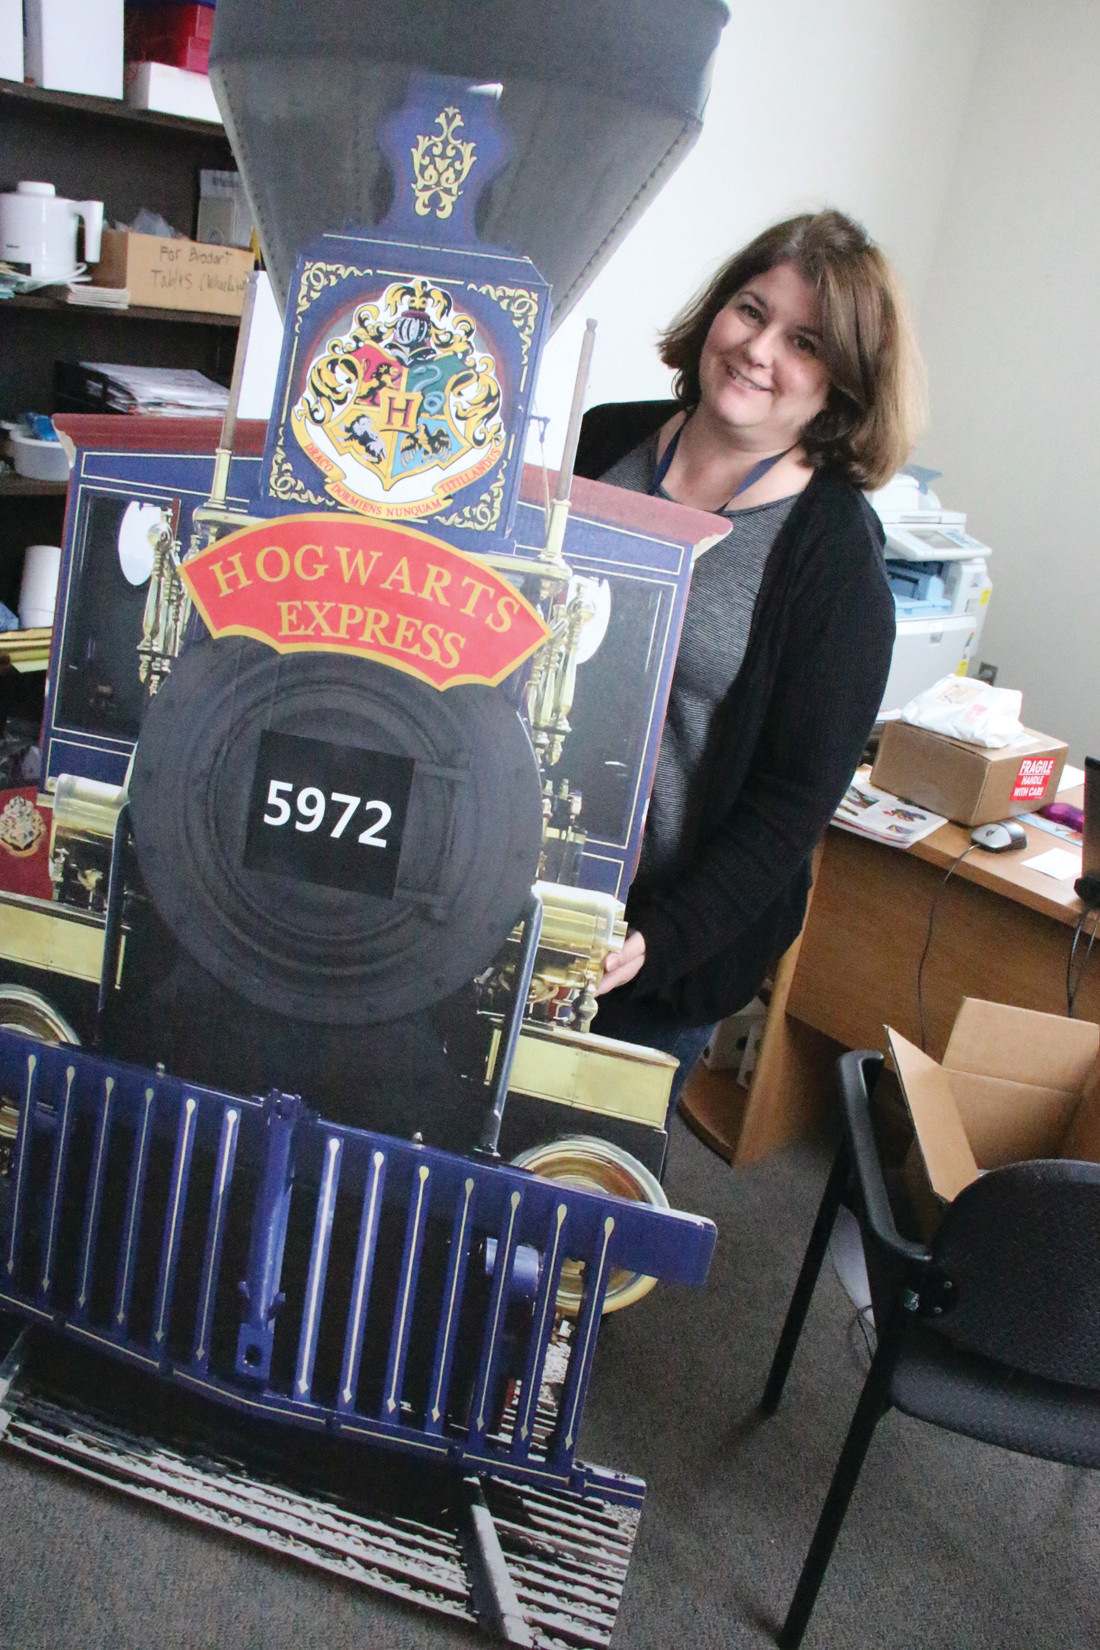 ALL ABOARD: Librarian and wizard Pam Miech is ready to board the Hogwarts Express.